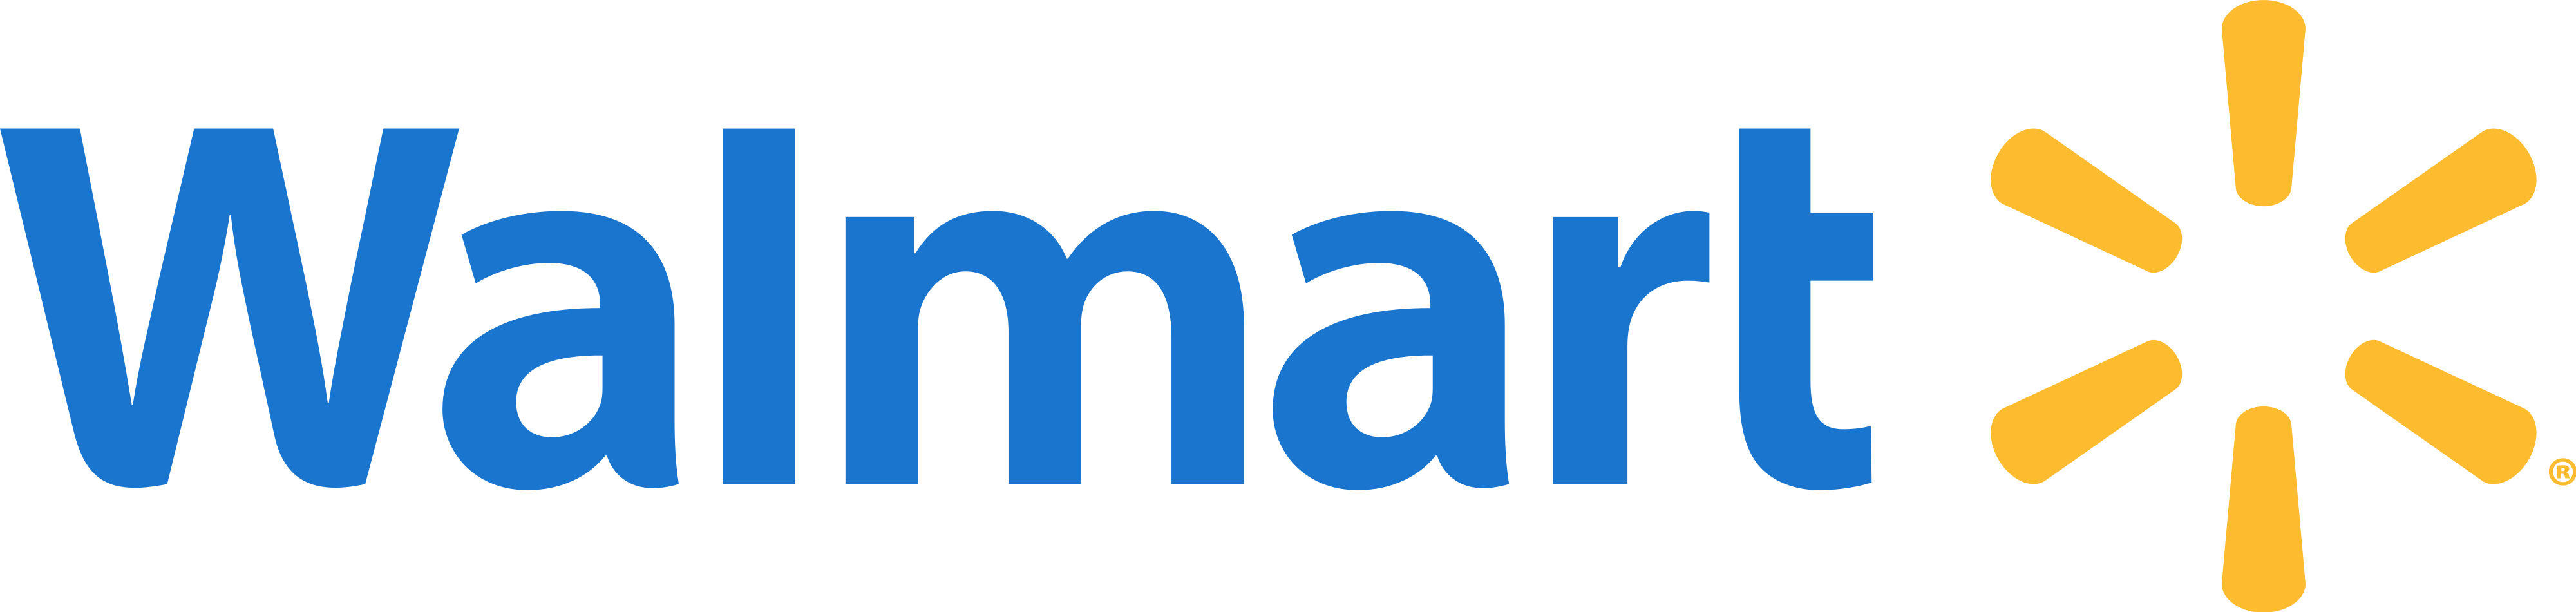 Walmart Logo - PNG and Vector - Logo Download